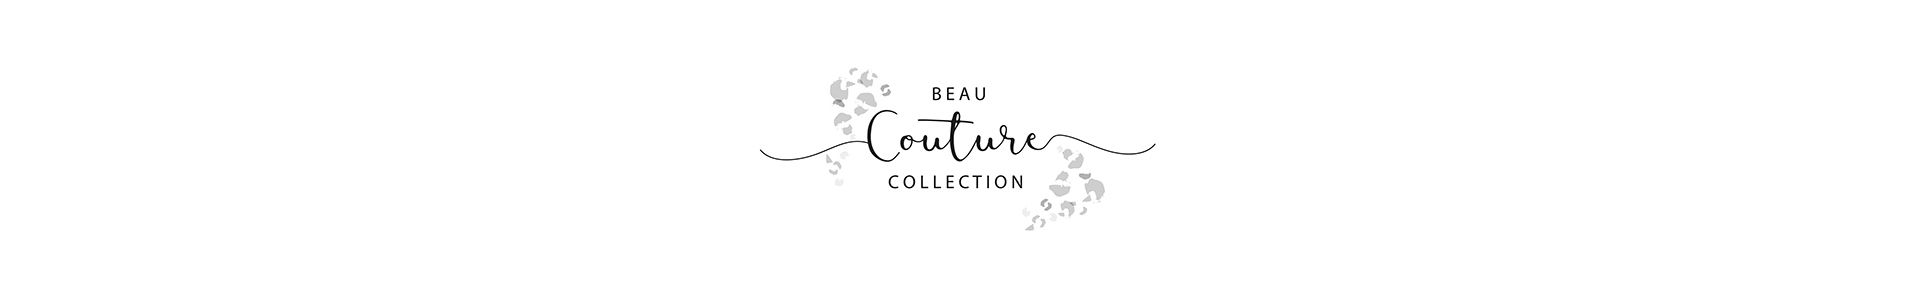 Beau Couture